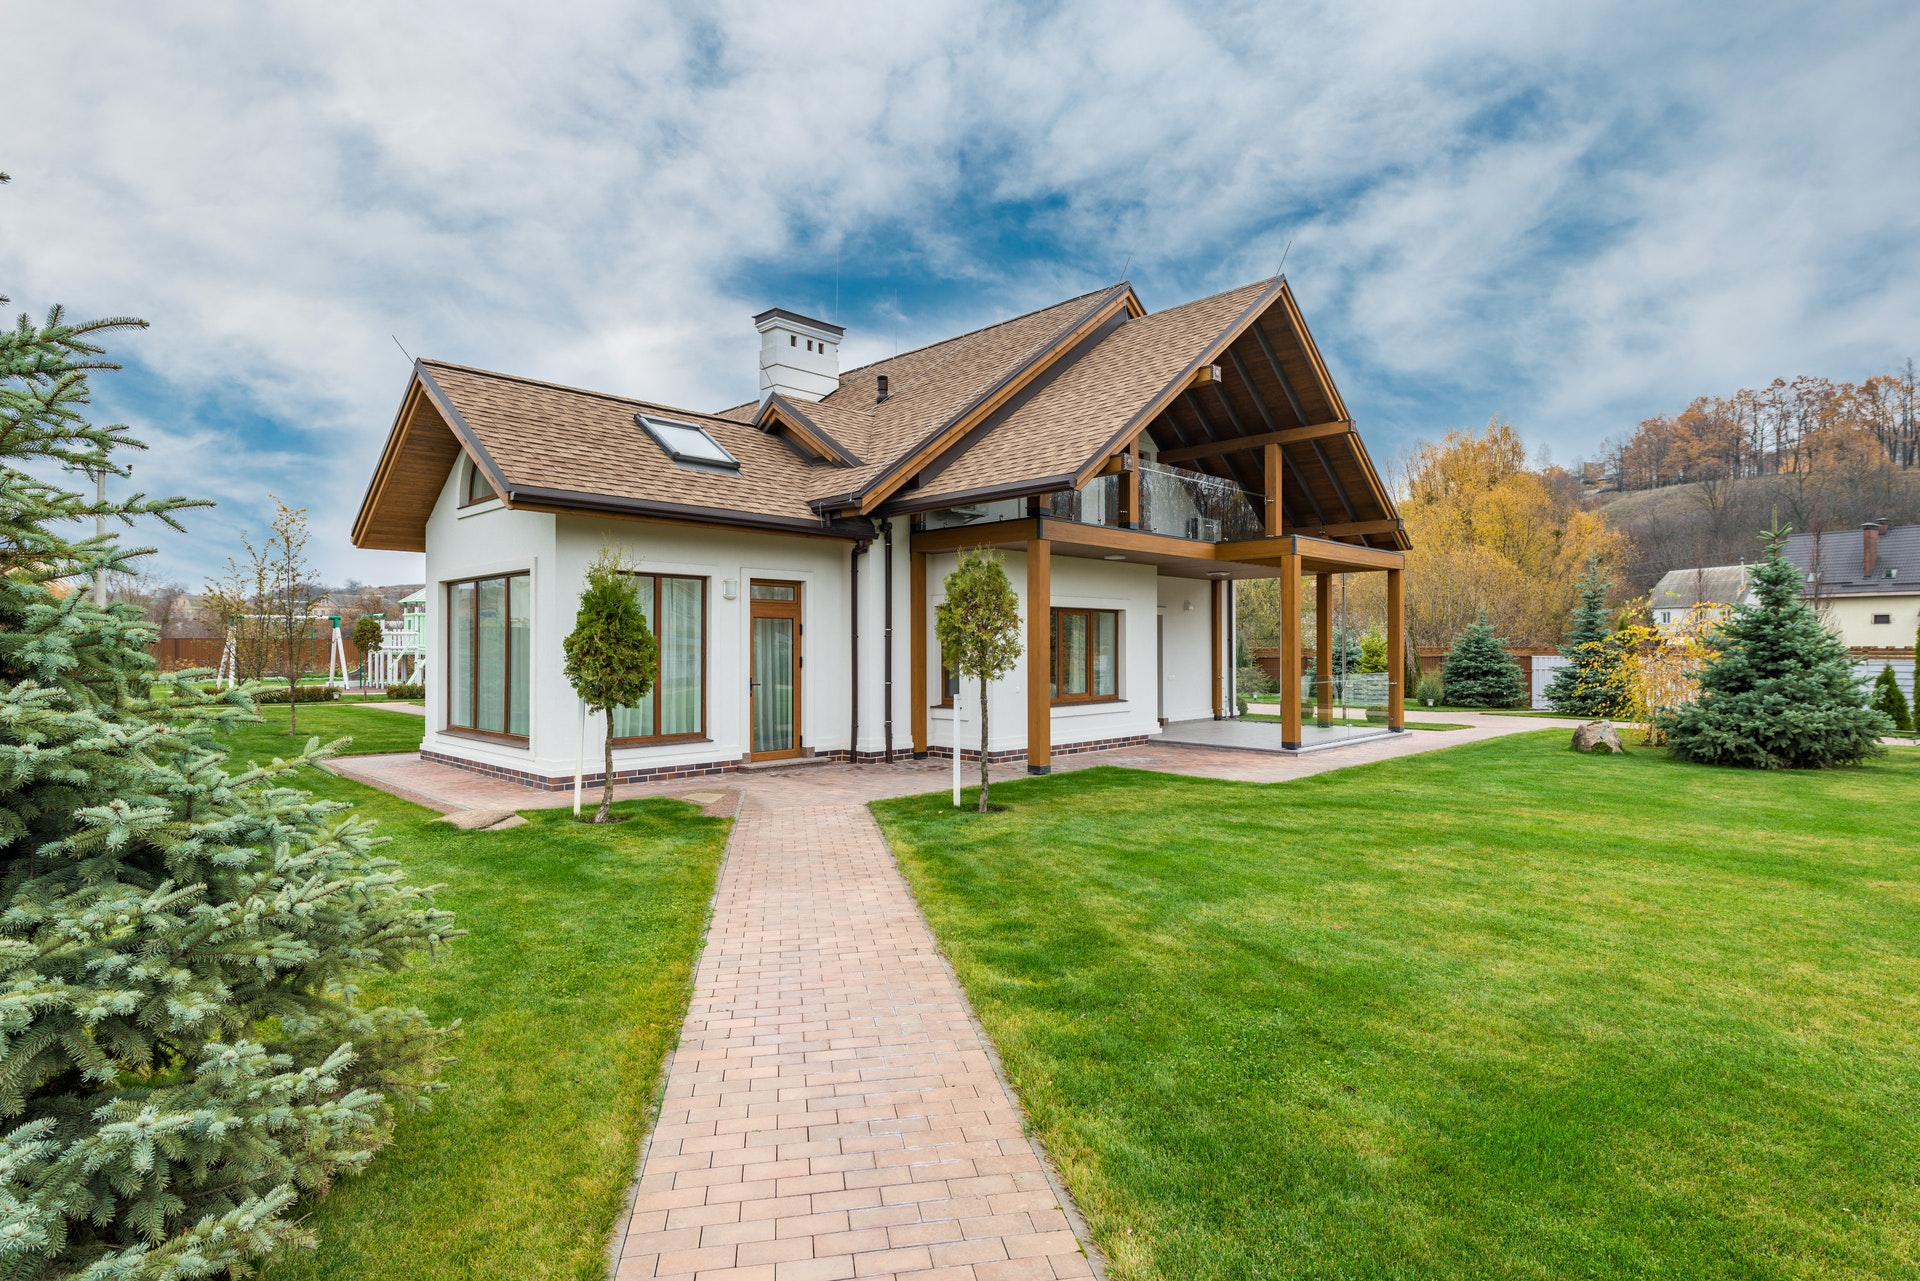 Our TOP TIPS for building your forever home